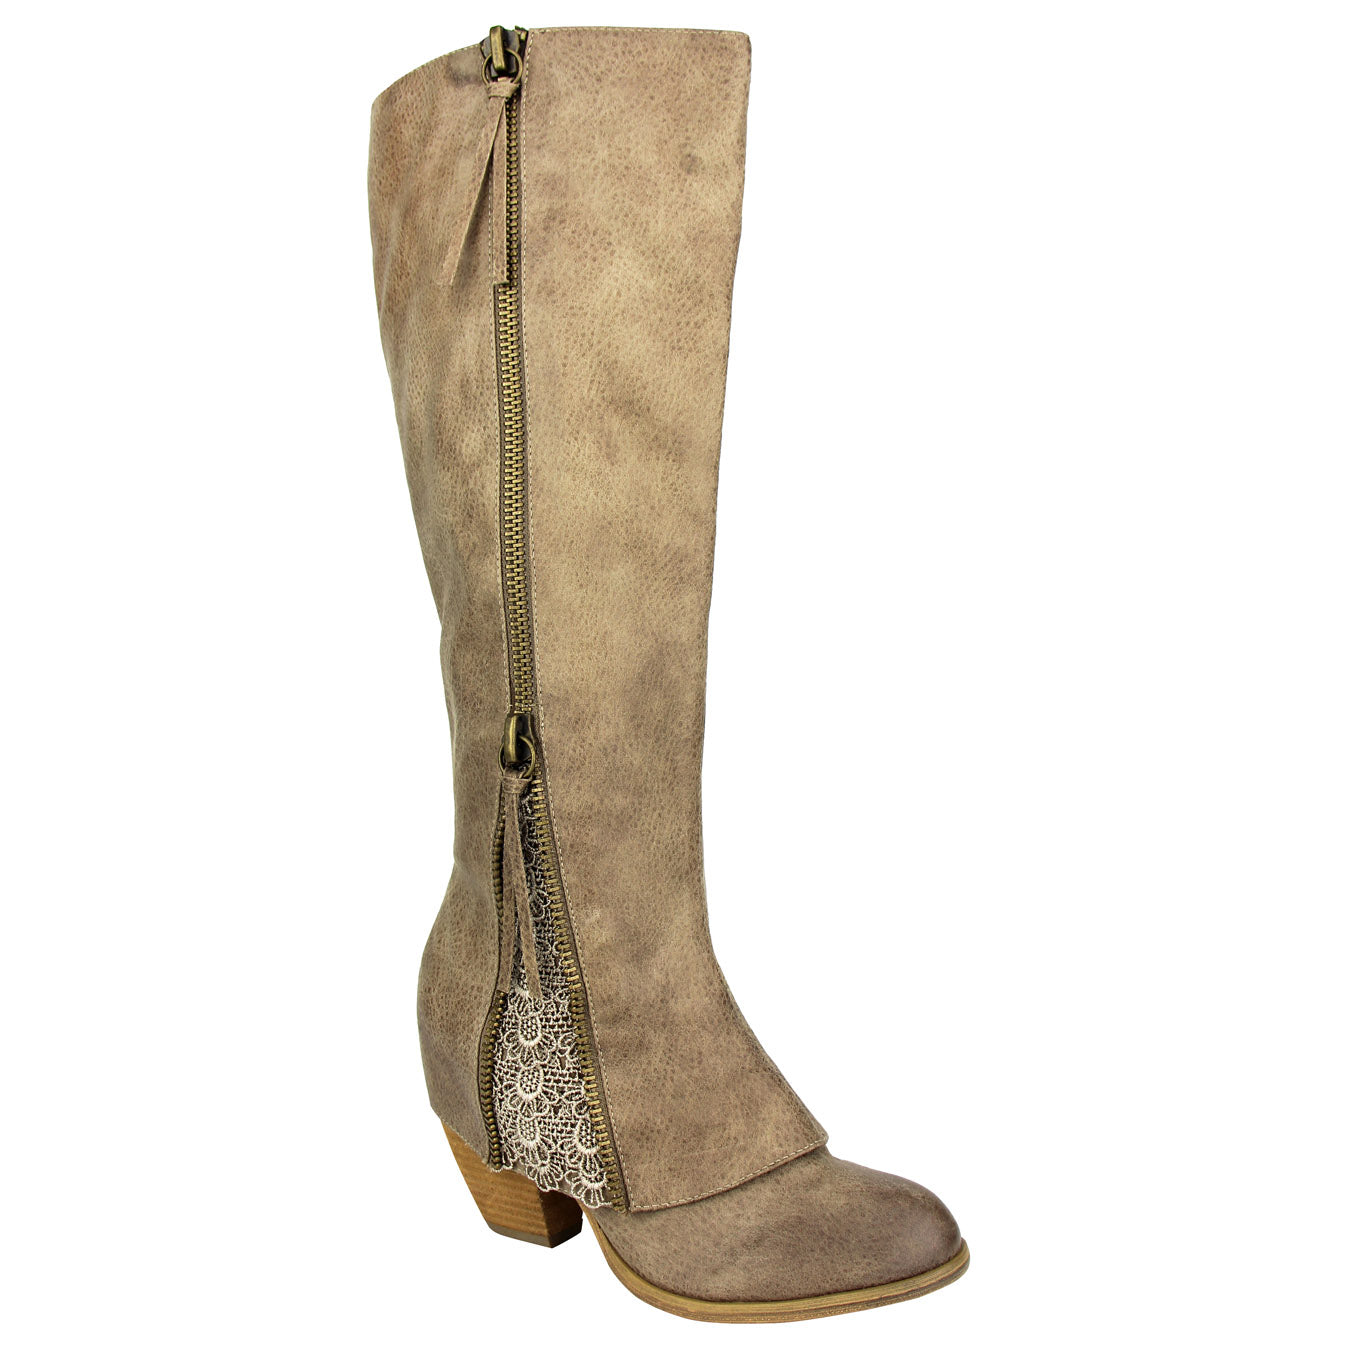 Not_Rated_women's_tall-boot_3inch-heel_zipper_taupe